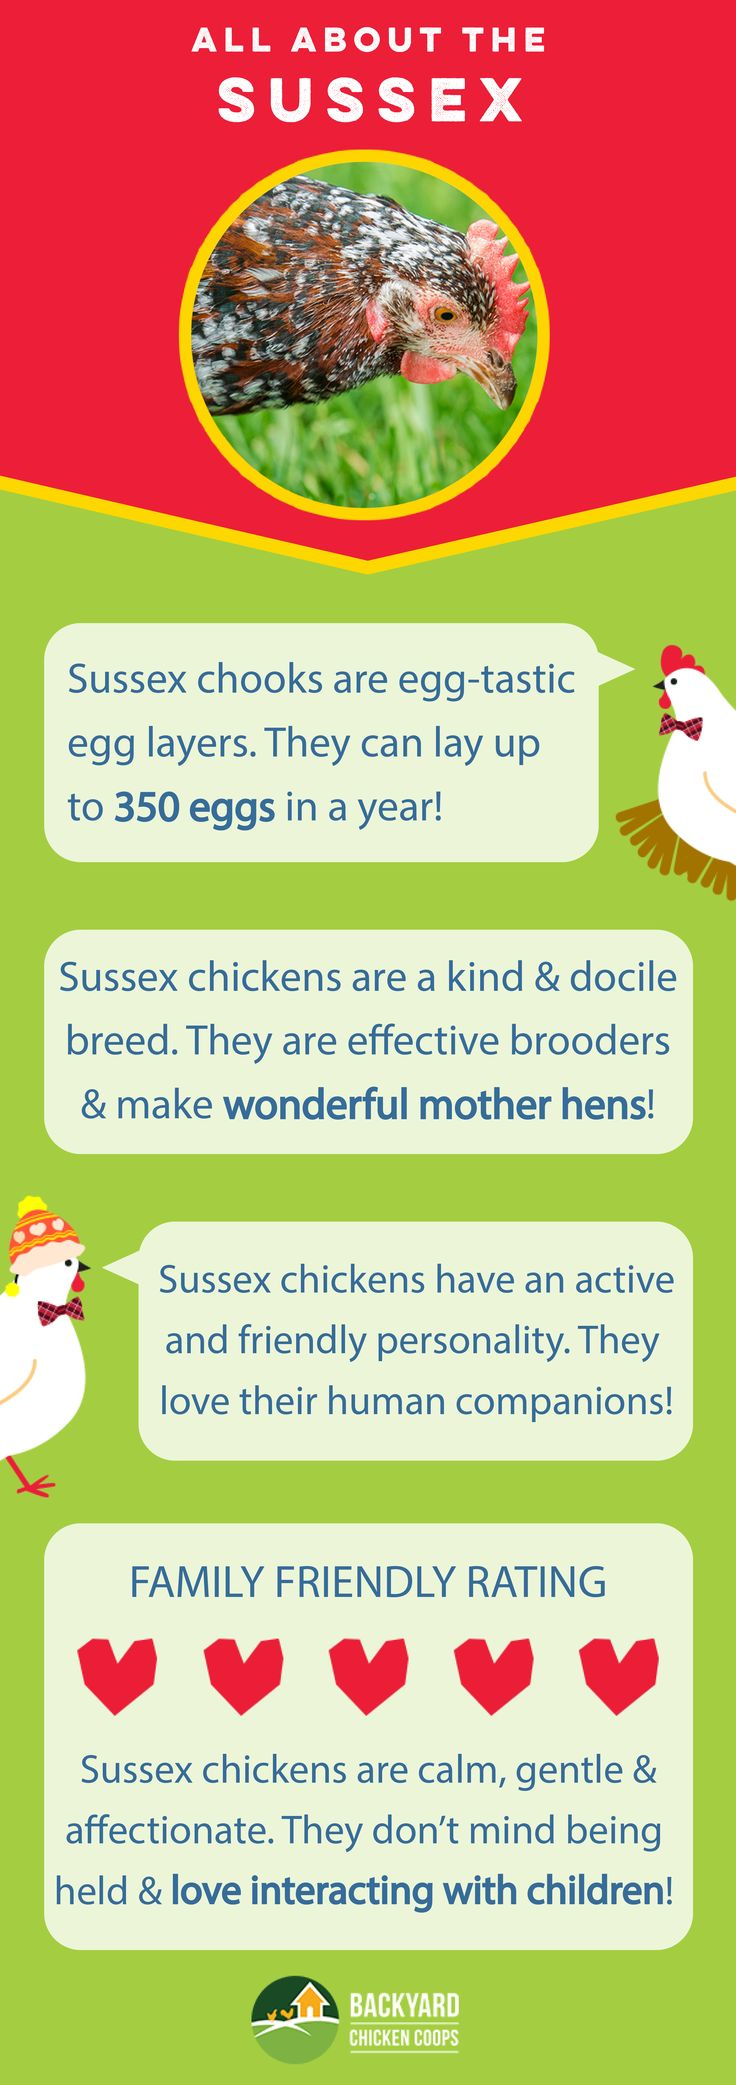 Sussex chickens make wonderful additions to any backyard flock with their many egg-tastic qualities and loveable personality! Check out their breed profile here, http://www.backyardchickencoops.com.au/breed-profile-sussex/  #loveyourchickens #infographic #sussexchickens